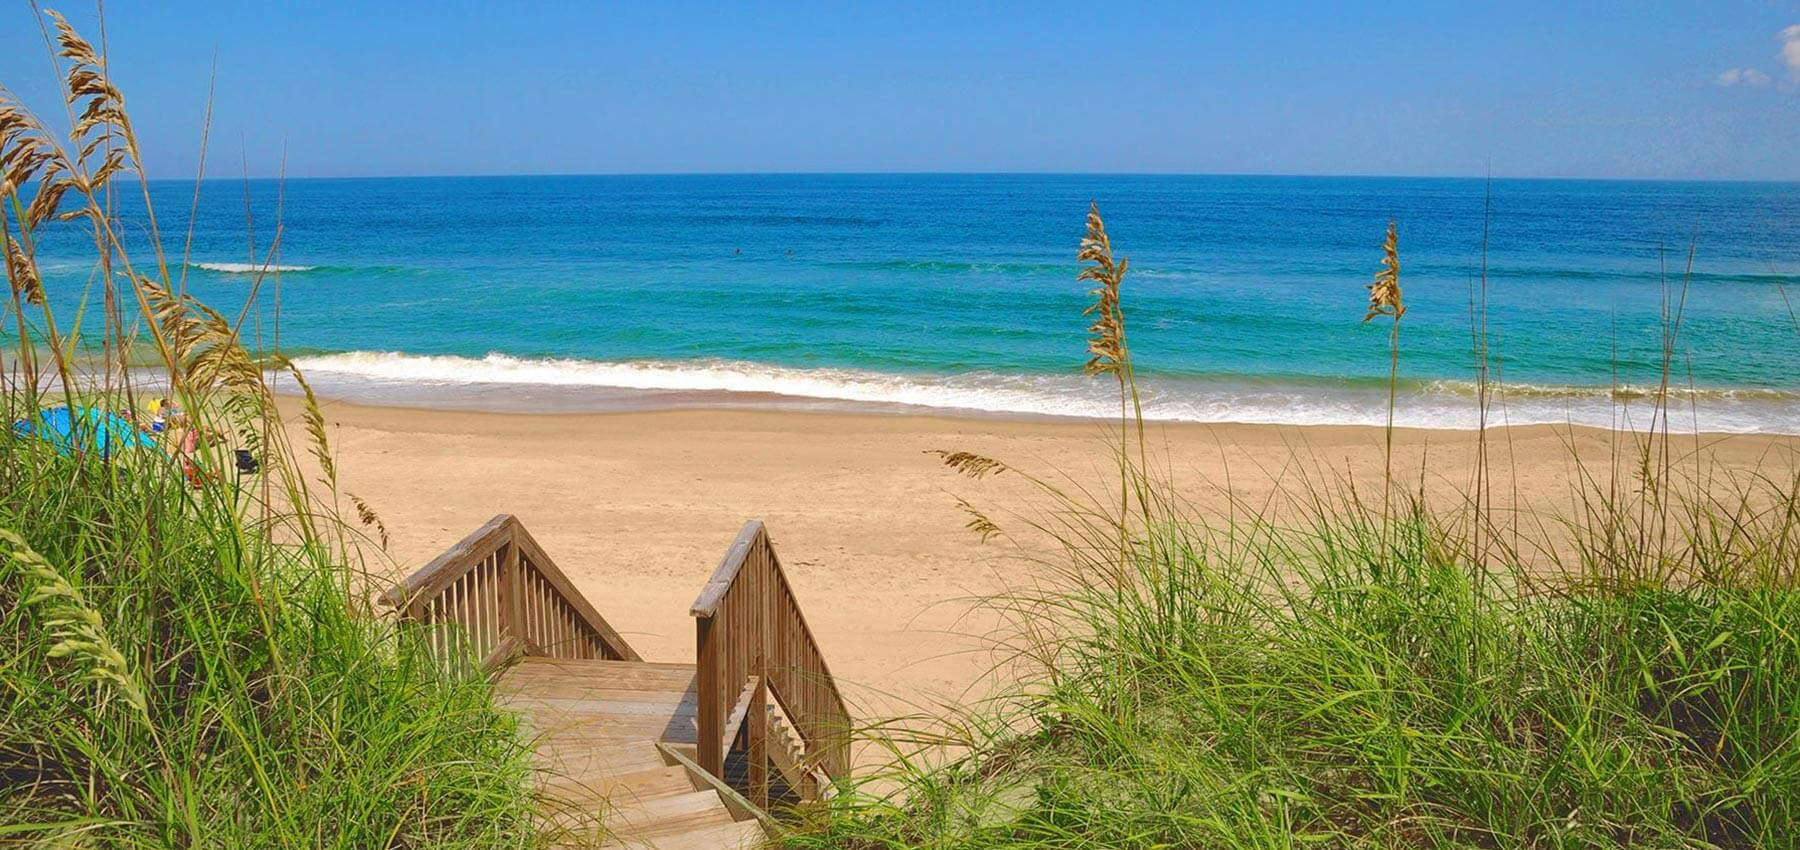 sandpiper north rentals head outer banks cottage mullen watch carolina nags obx beach vacation s